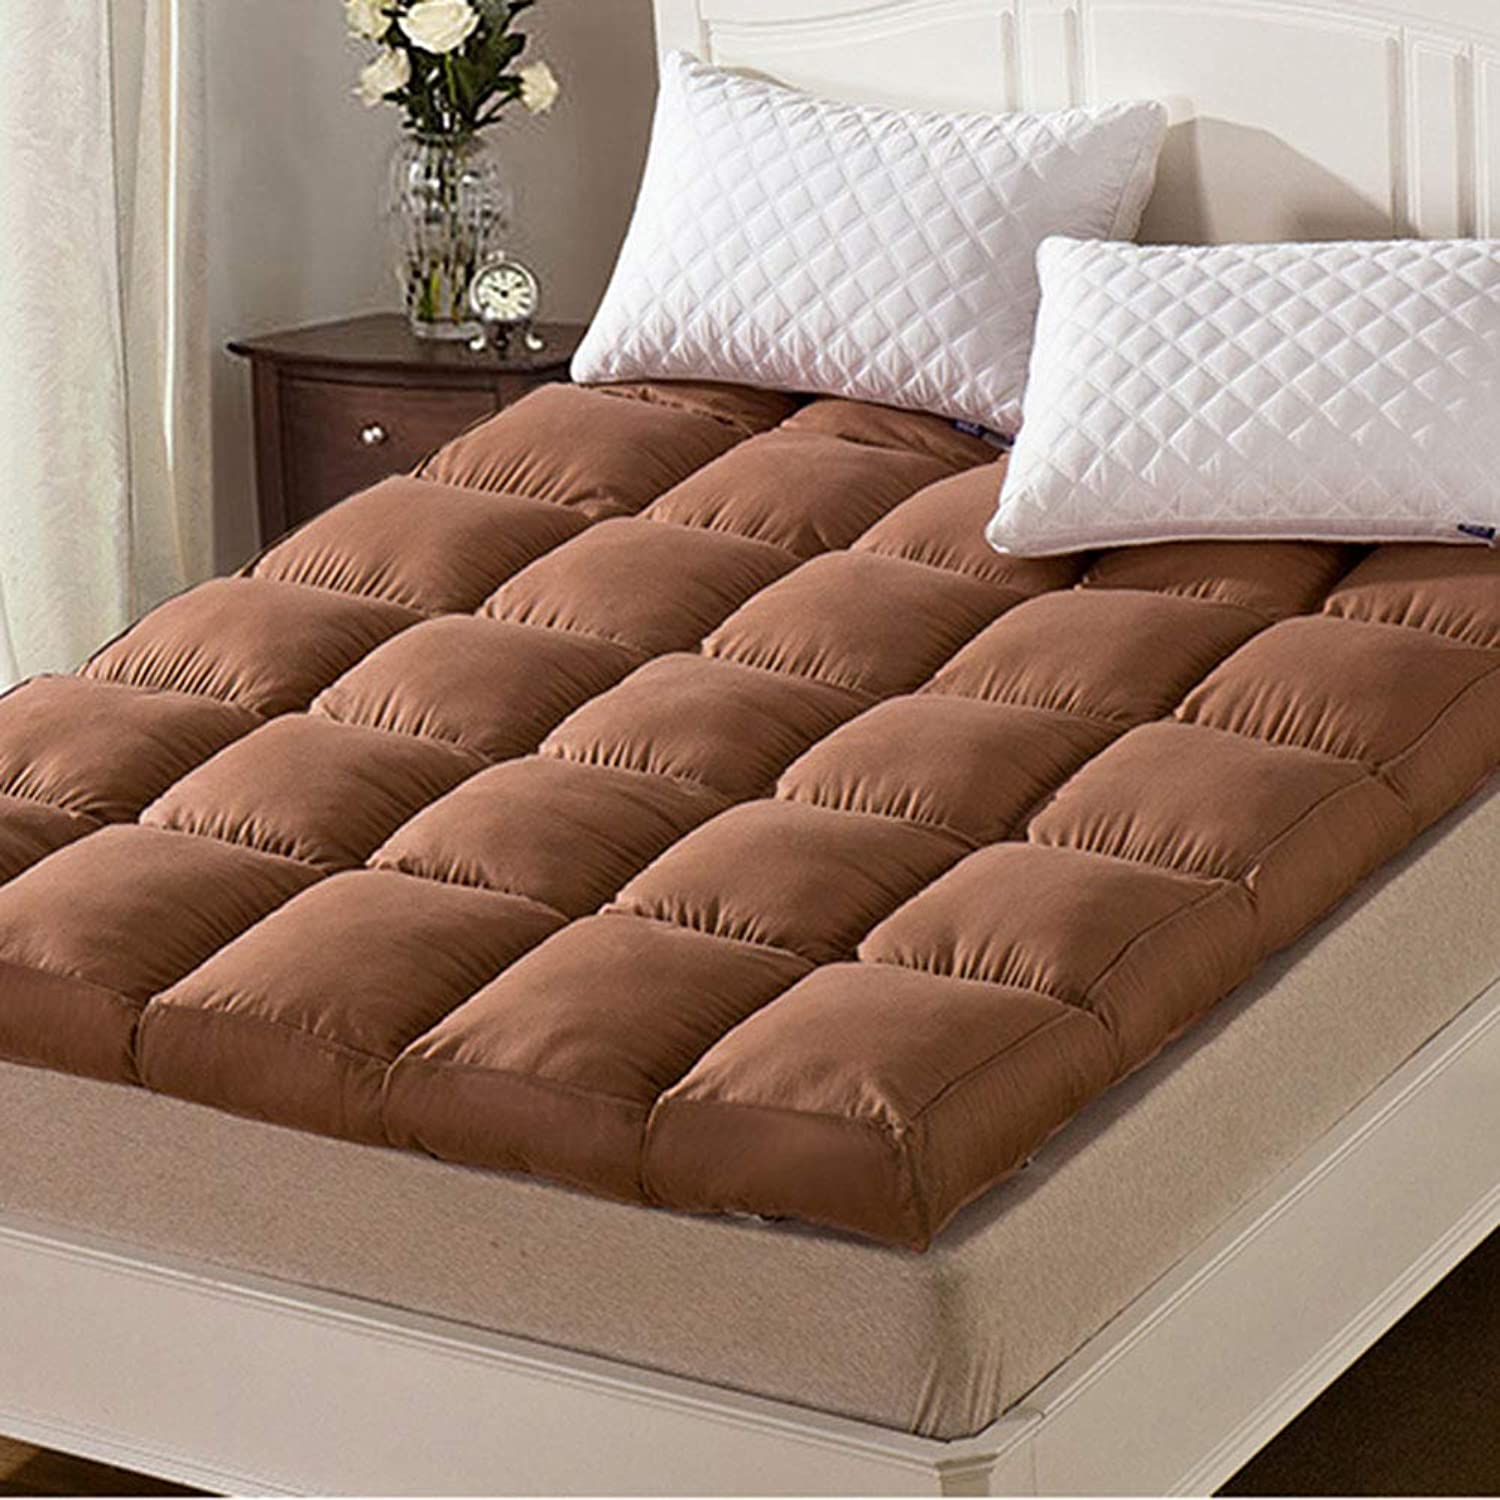 Thick Mattress Topper, Polyester Hypoallergenic Quilted Folding Futon Mattress Sleeping Sofa Bed Mattress pad -Coffee 120x200cm(47x79inch)